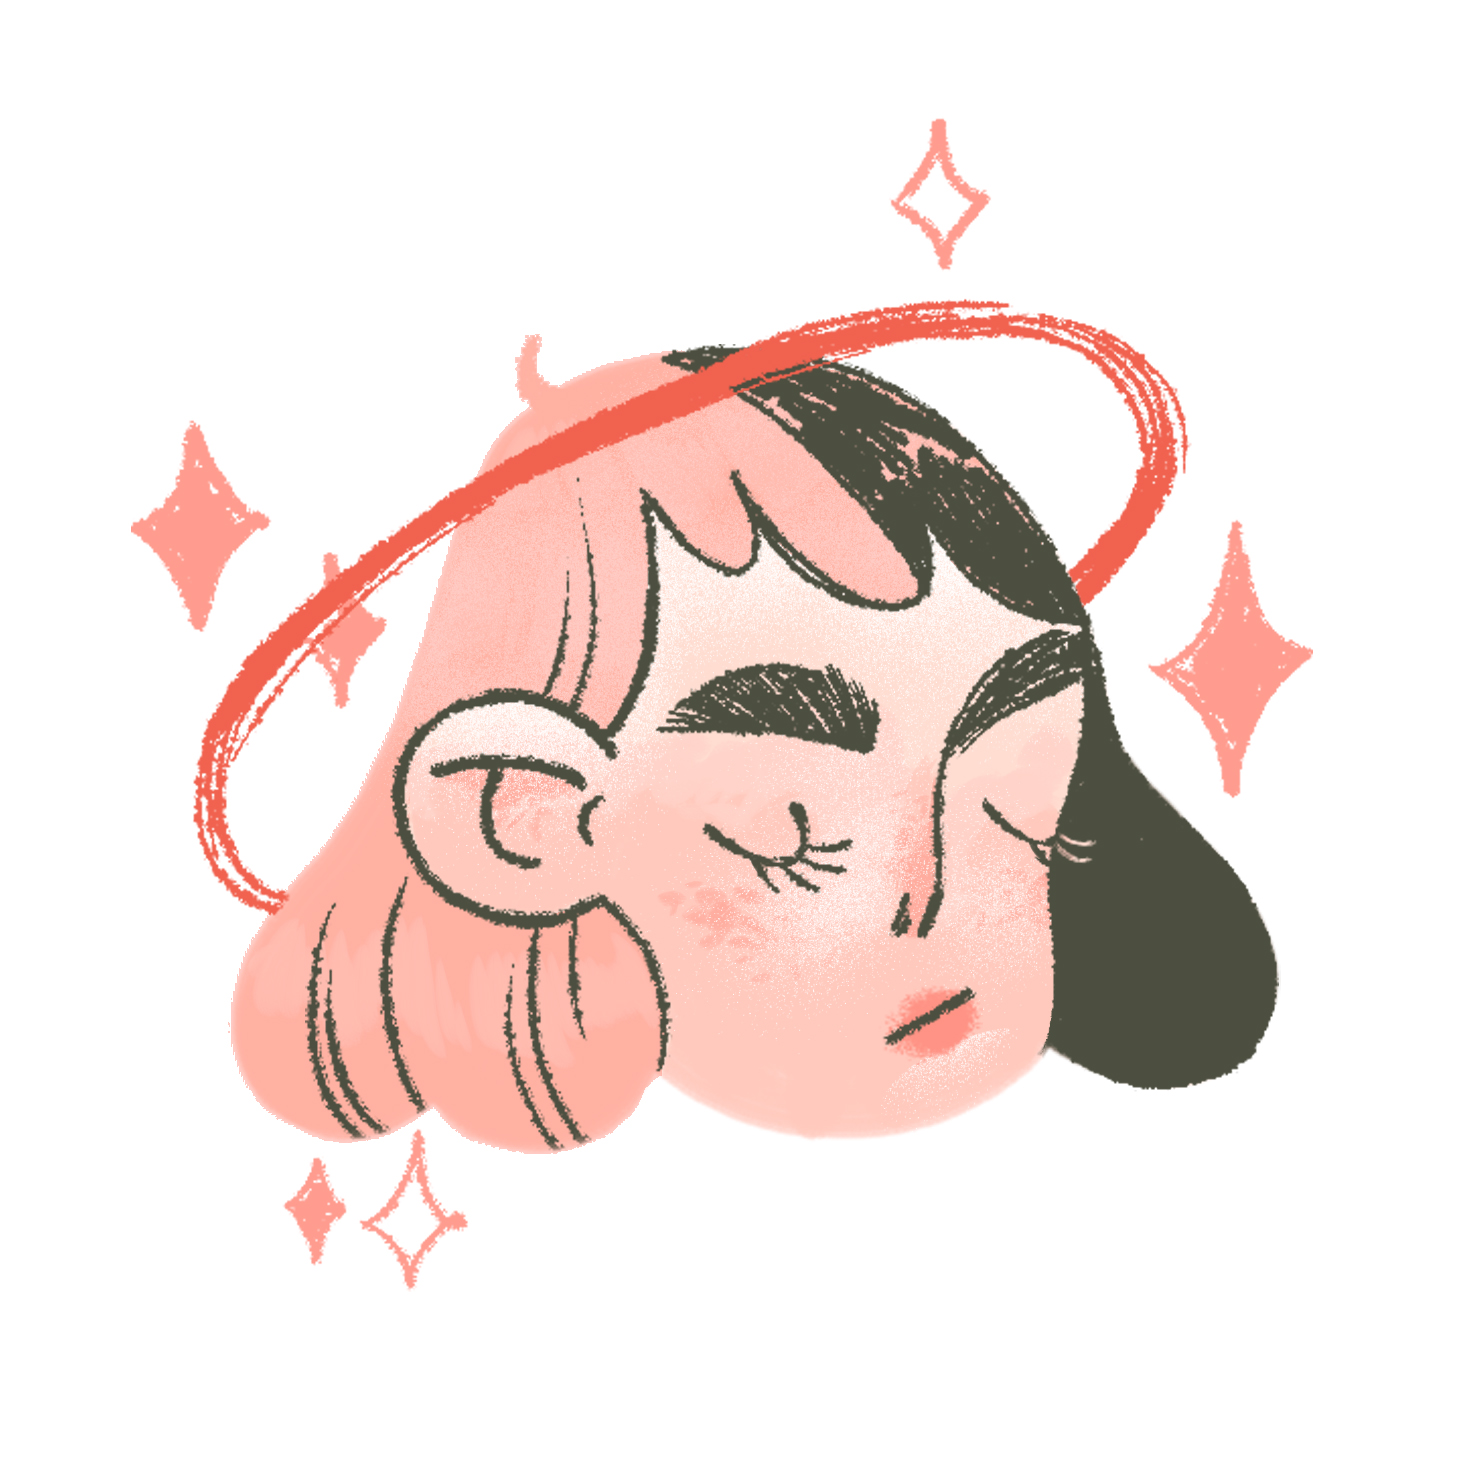 Spacey head girl copy.jpg